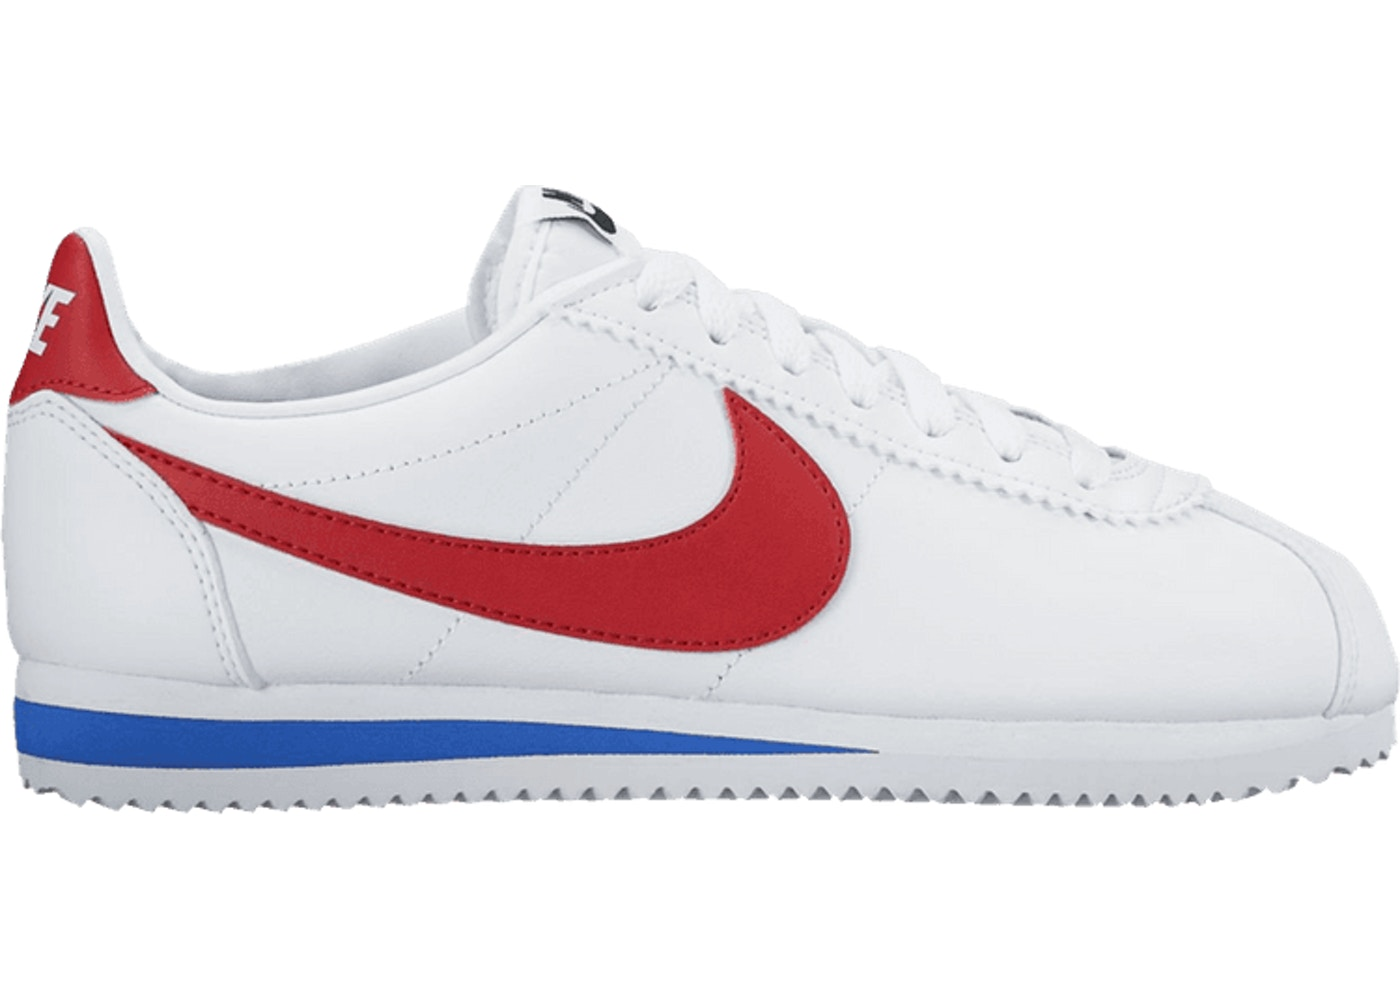 100% authentic ba37f 78567 Nike WMNS Classic Cortez Leather White Red Blue - 807471-103